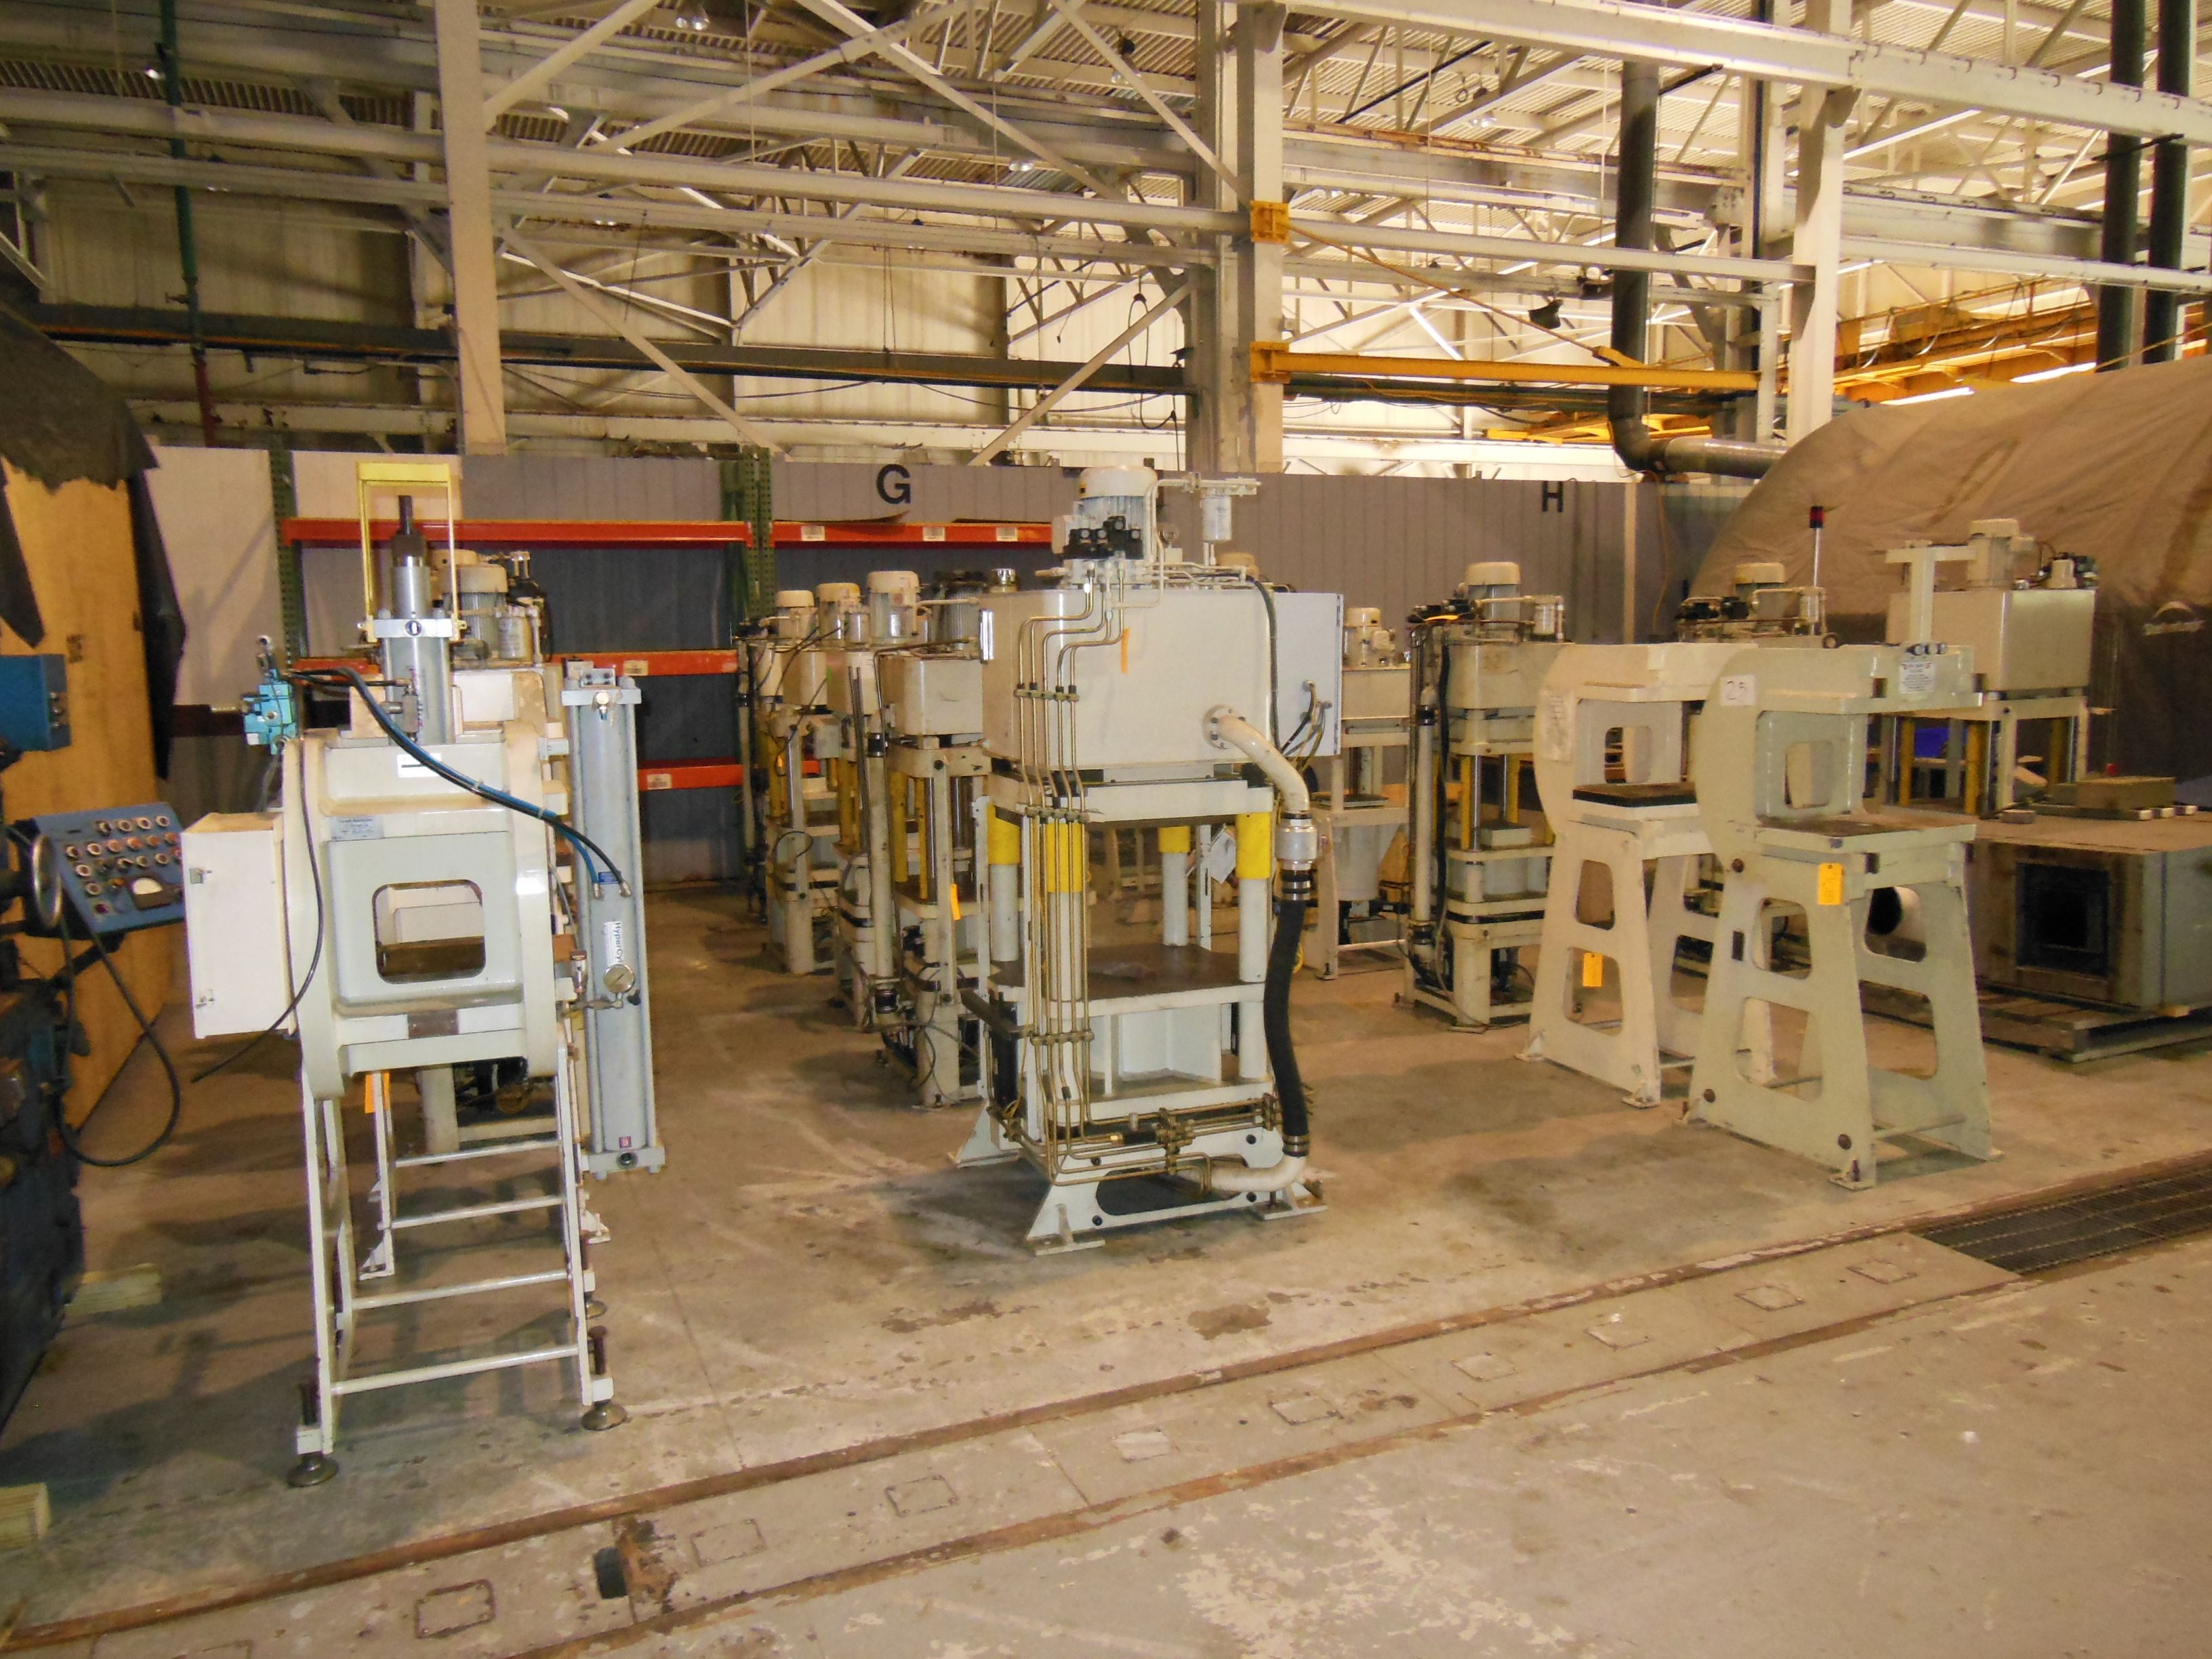 60 TON & 40 TON FISHER DYNAMICS UP ACTING HYDRAULIC 4 POST PRESS, C-FRAME PRESSES, C-FRAME STANDS, CUSTOMER CHOICE 19 AVAILABLE!!